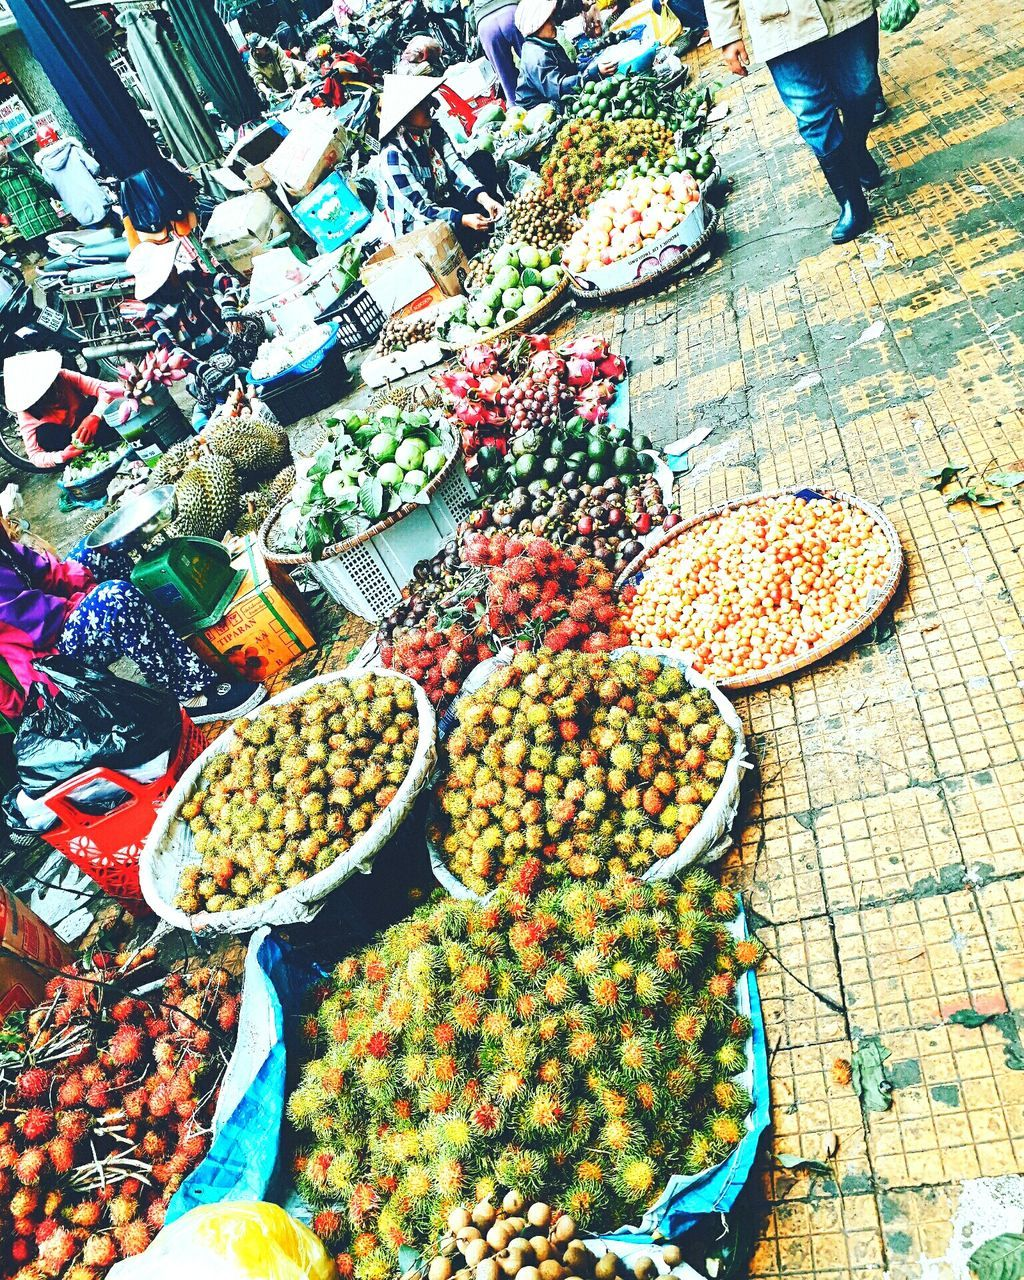 food and drink, food, variation, for sale, retail, market, choice, fruit, high angle view, abundance, market stall, healthy eating, day, large group of objects, freshness, outdoors, vegetable, arrangement, real people